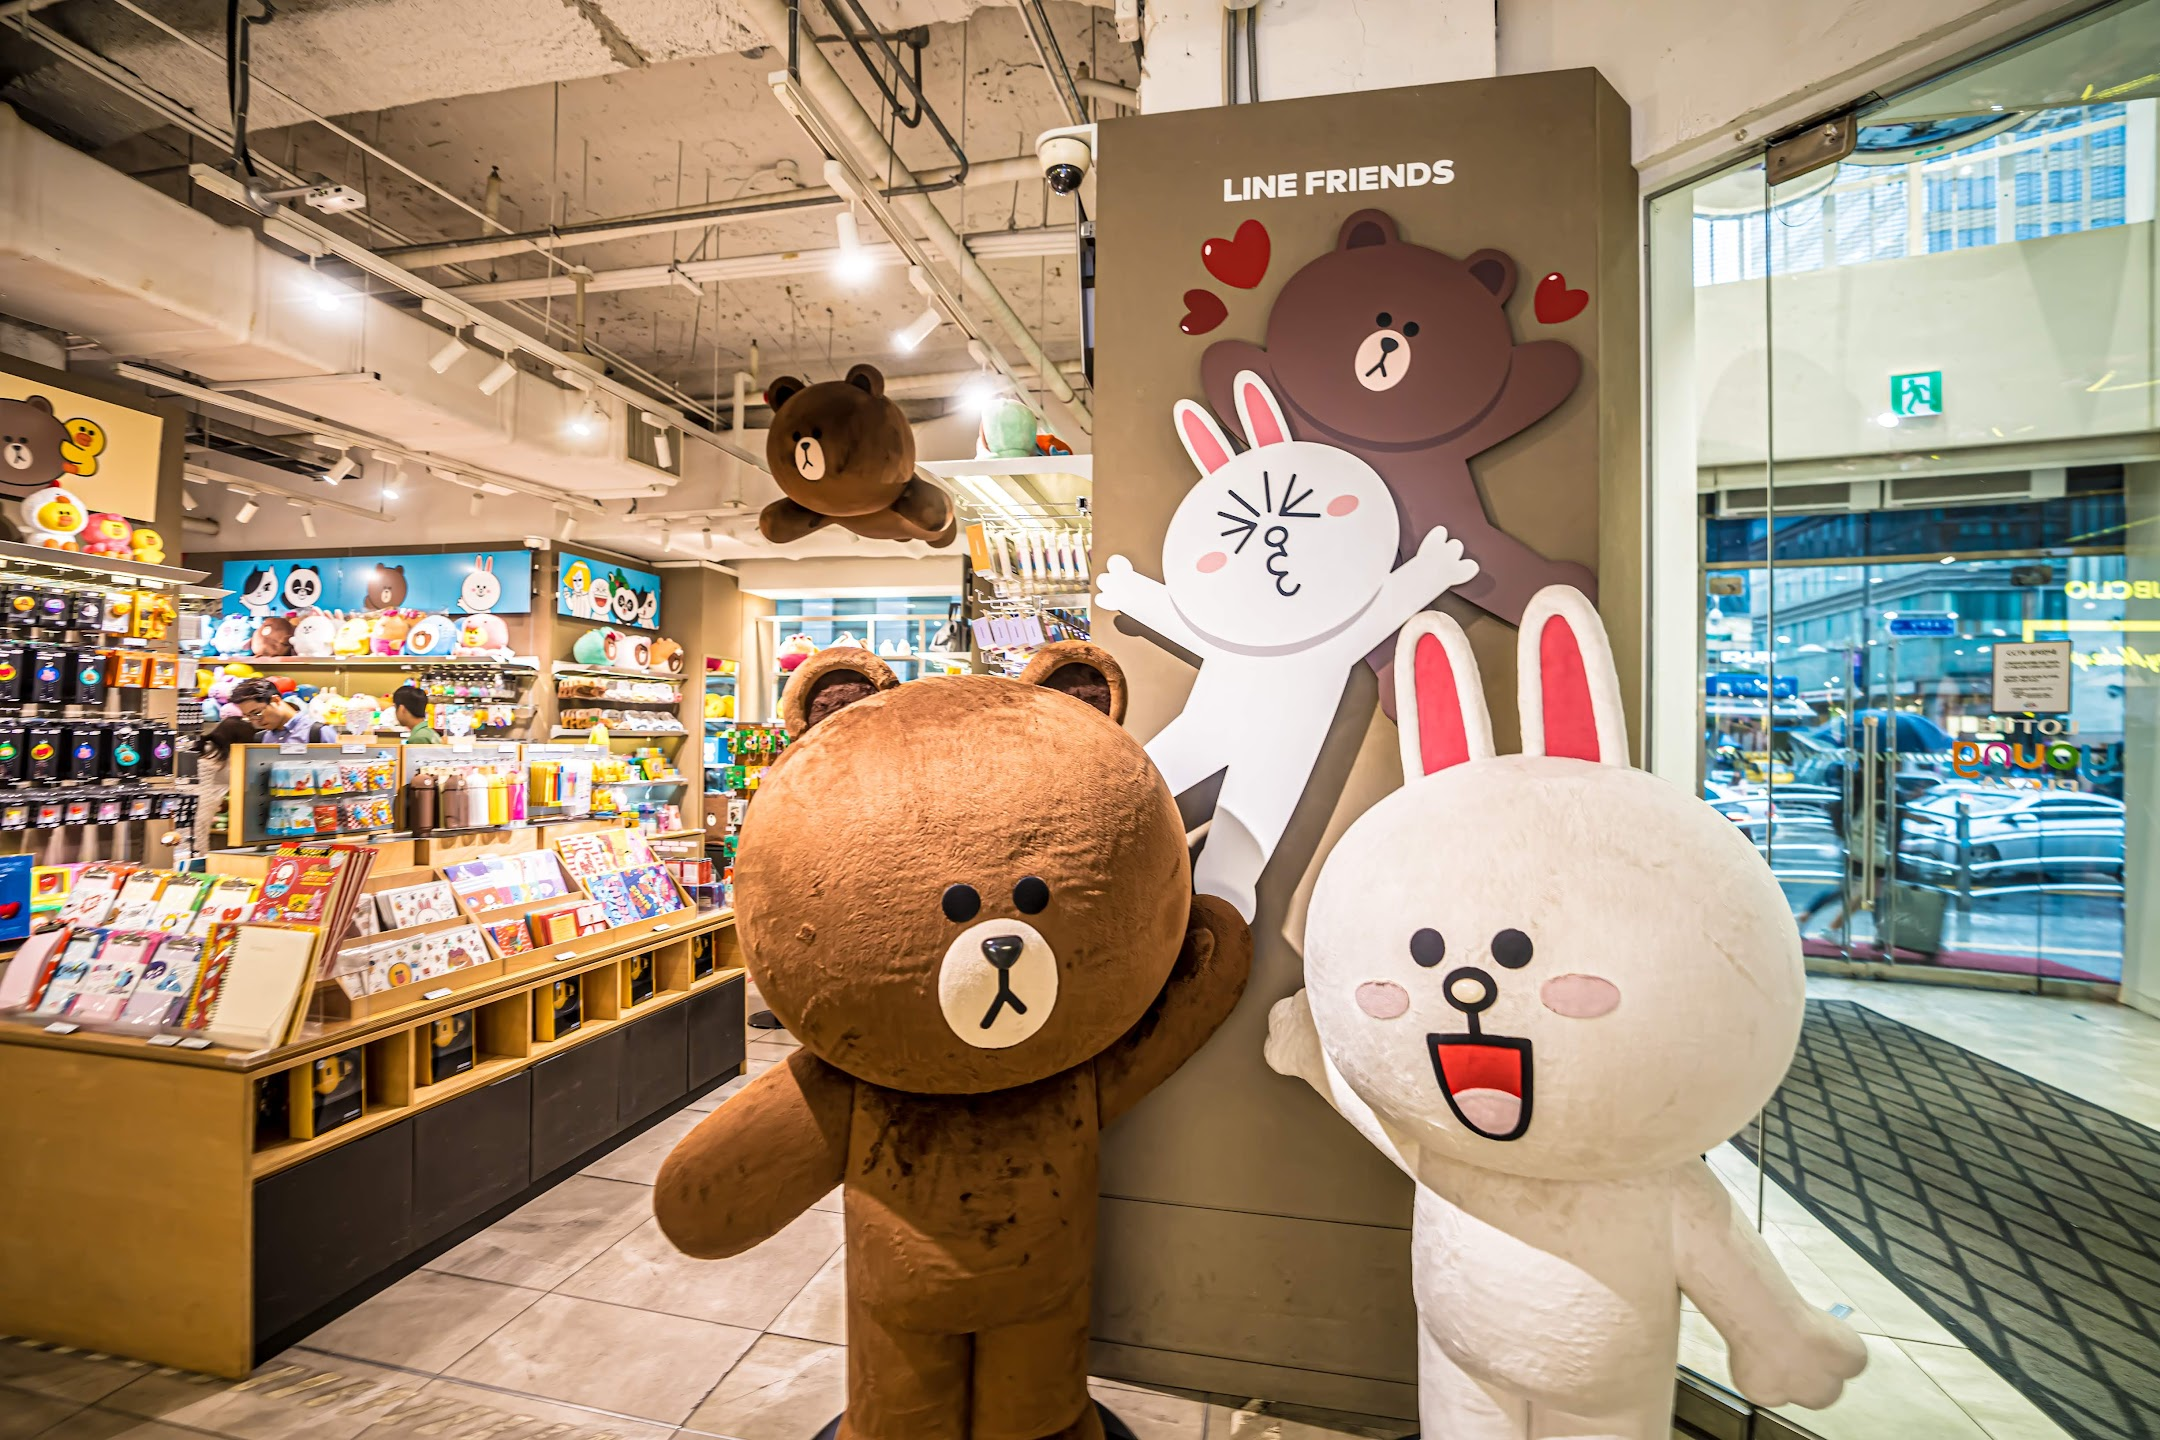 Seoul Myeong-dong Lotte Young Plaza LINE FRIENDS